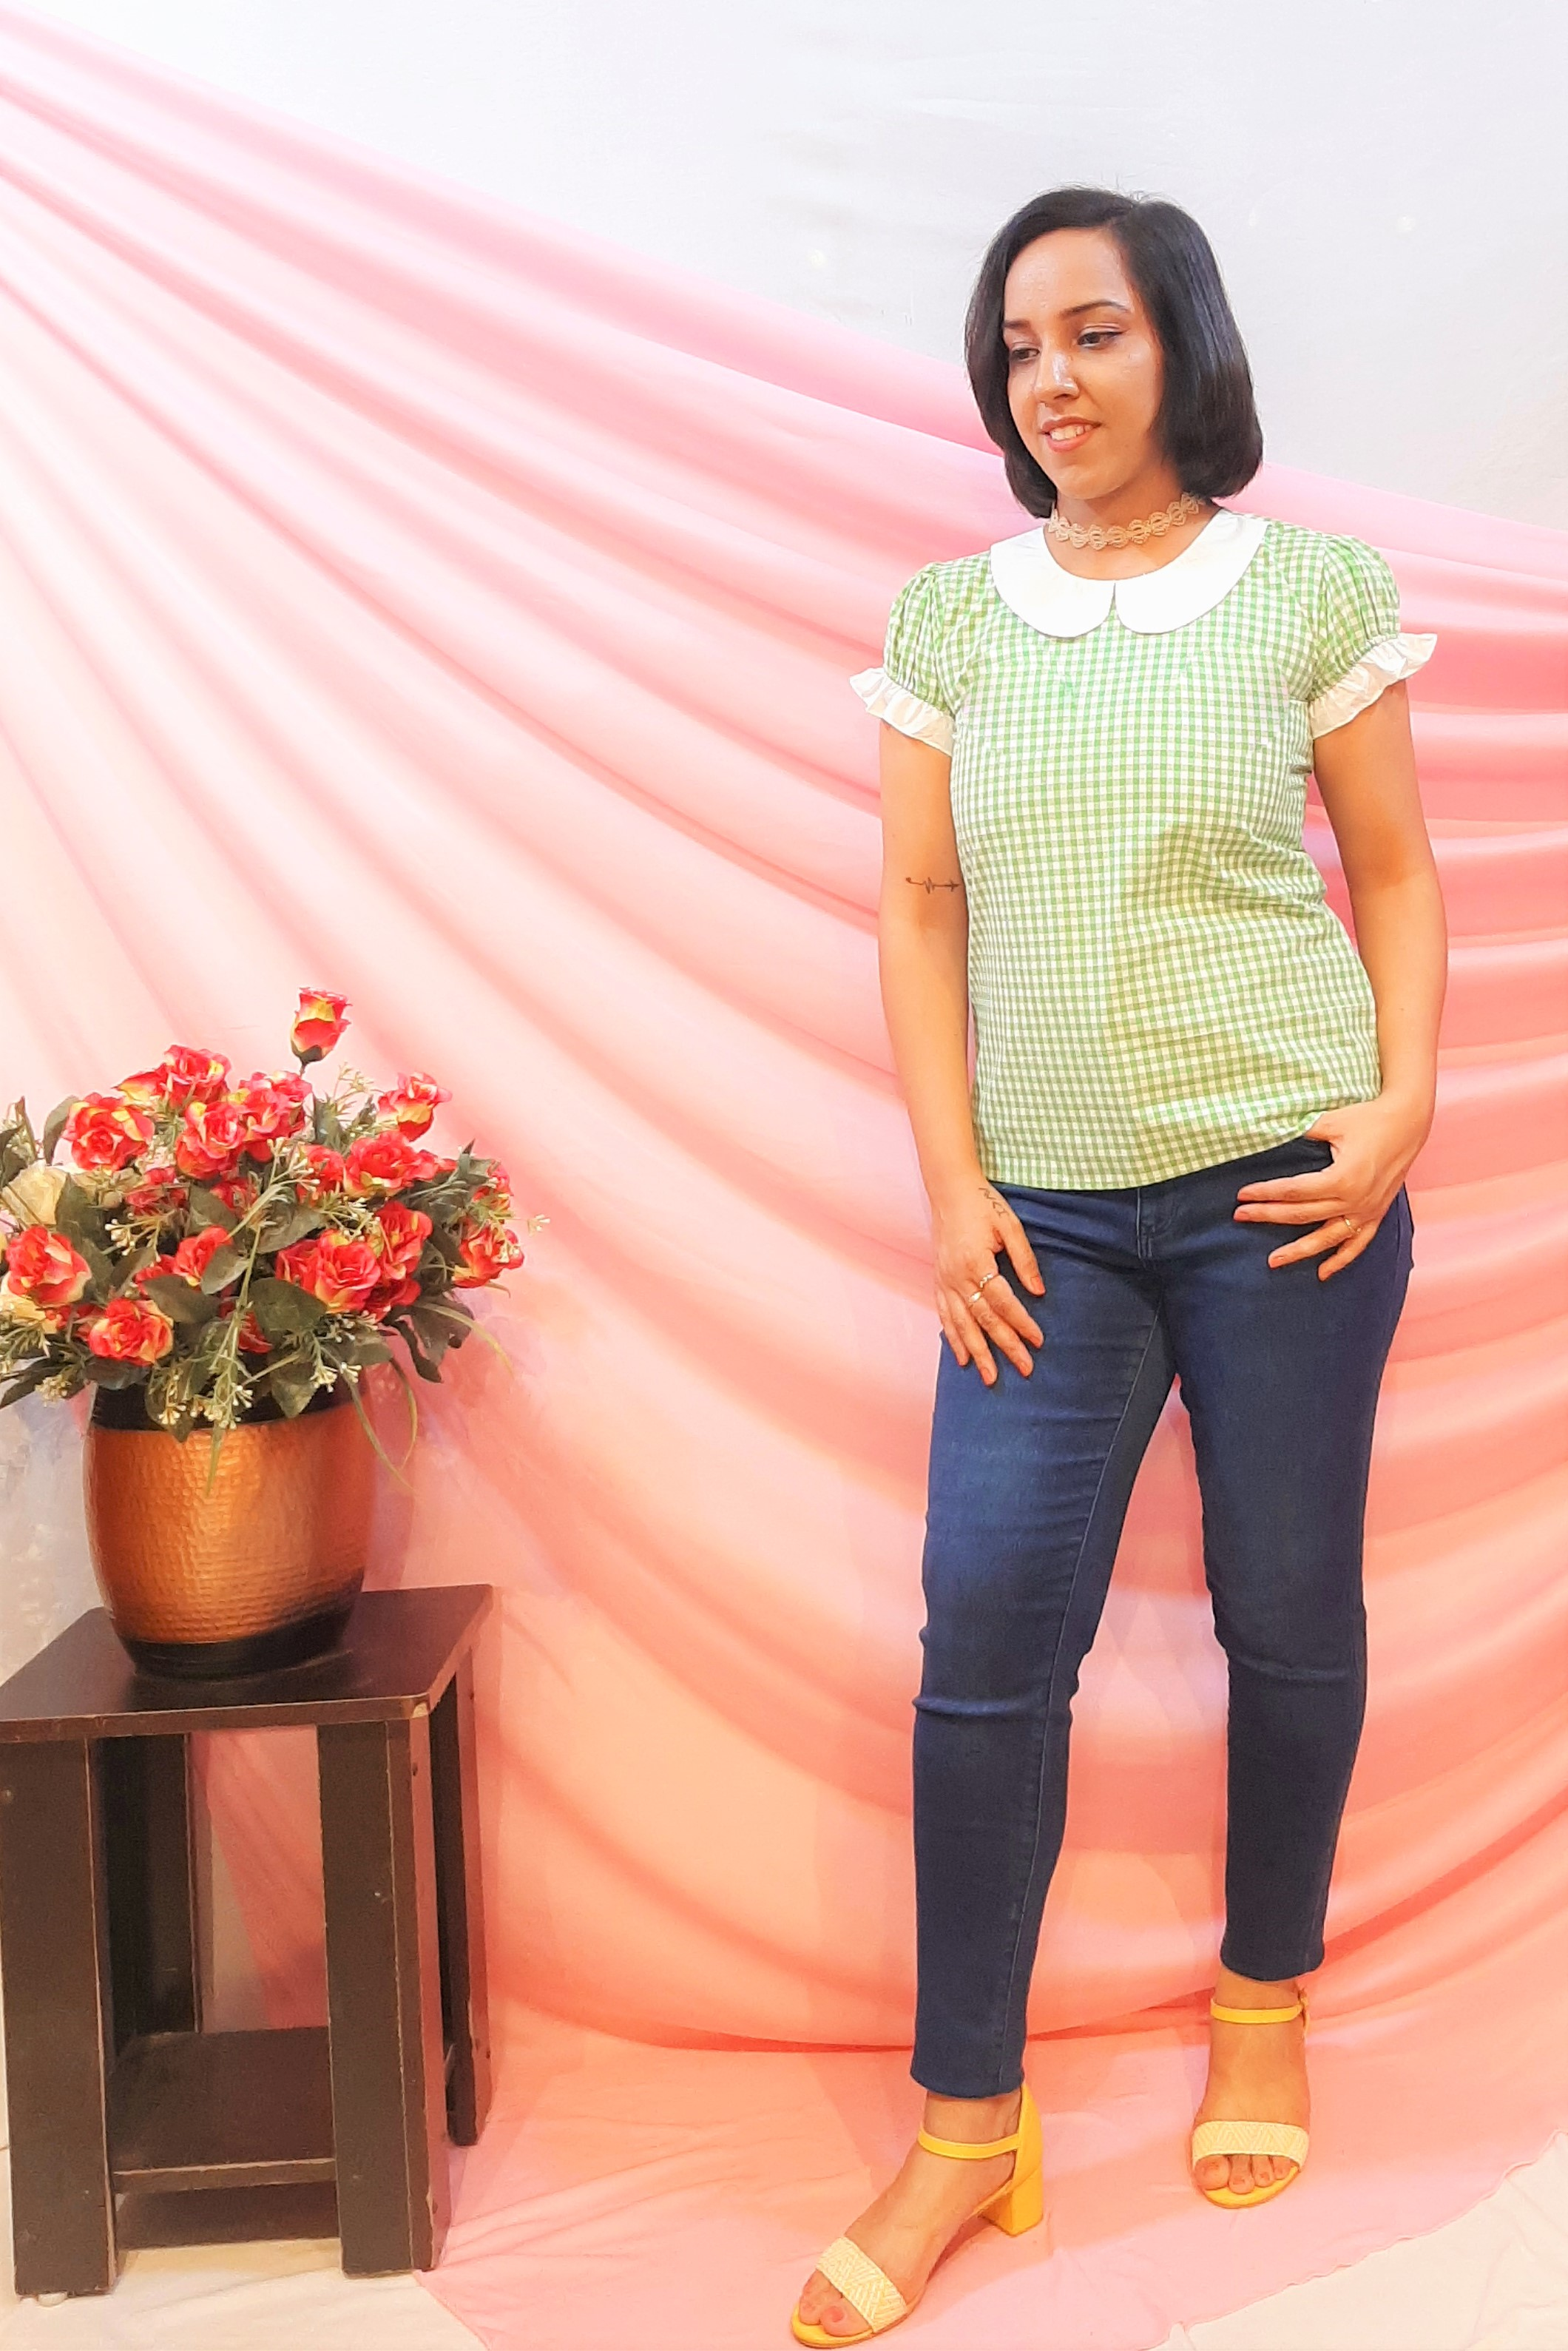 Folle Check Green Cotton Top With Peter Pan Collar For Work